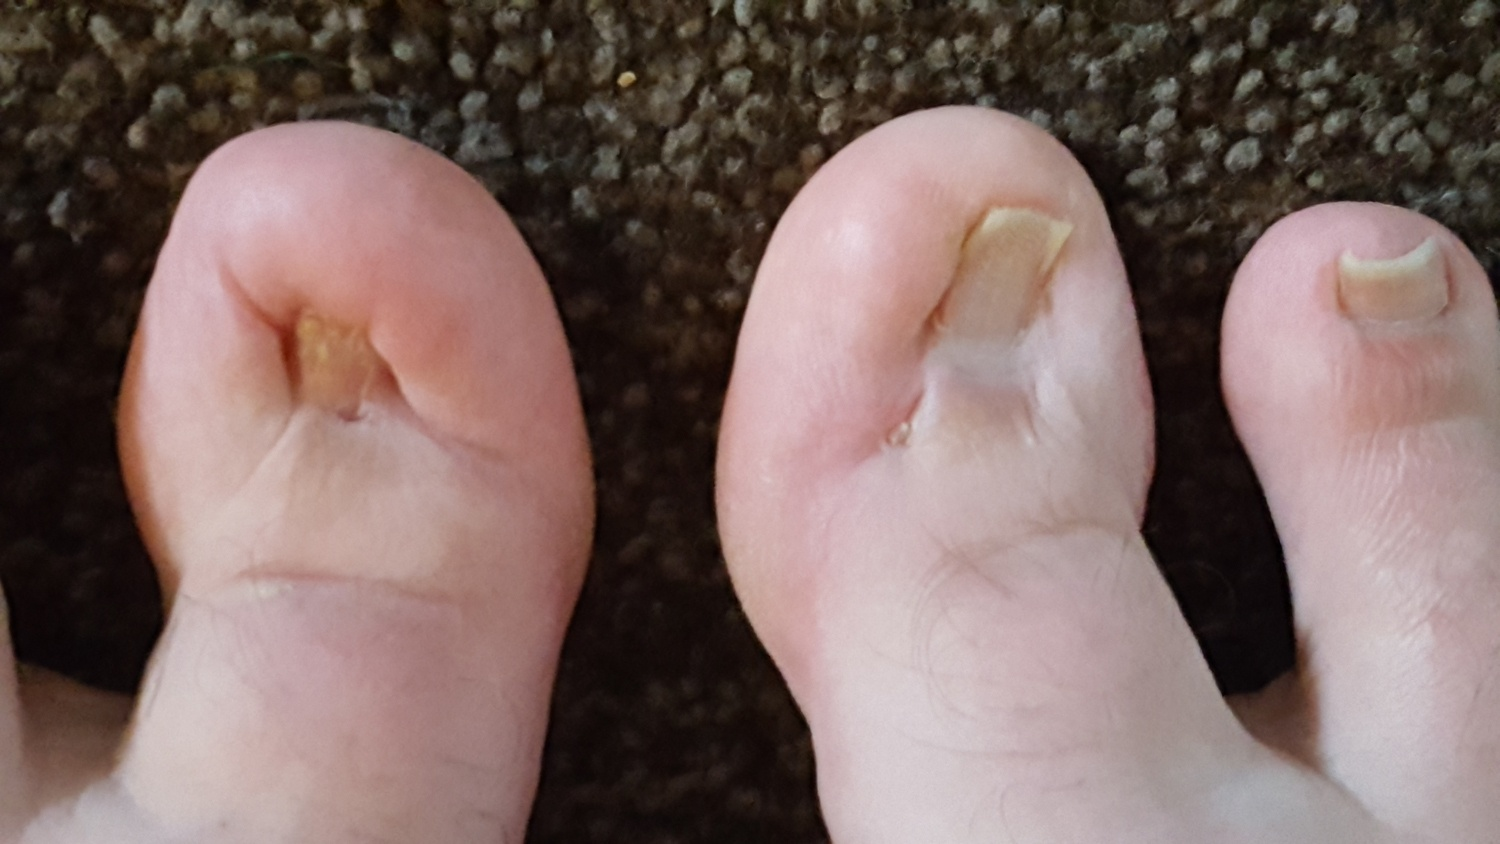 ingrown toenail post surgery